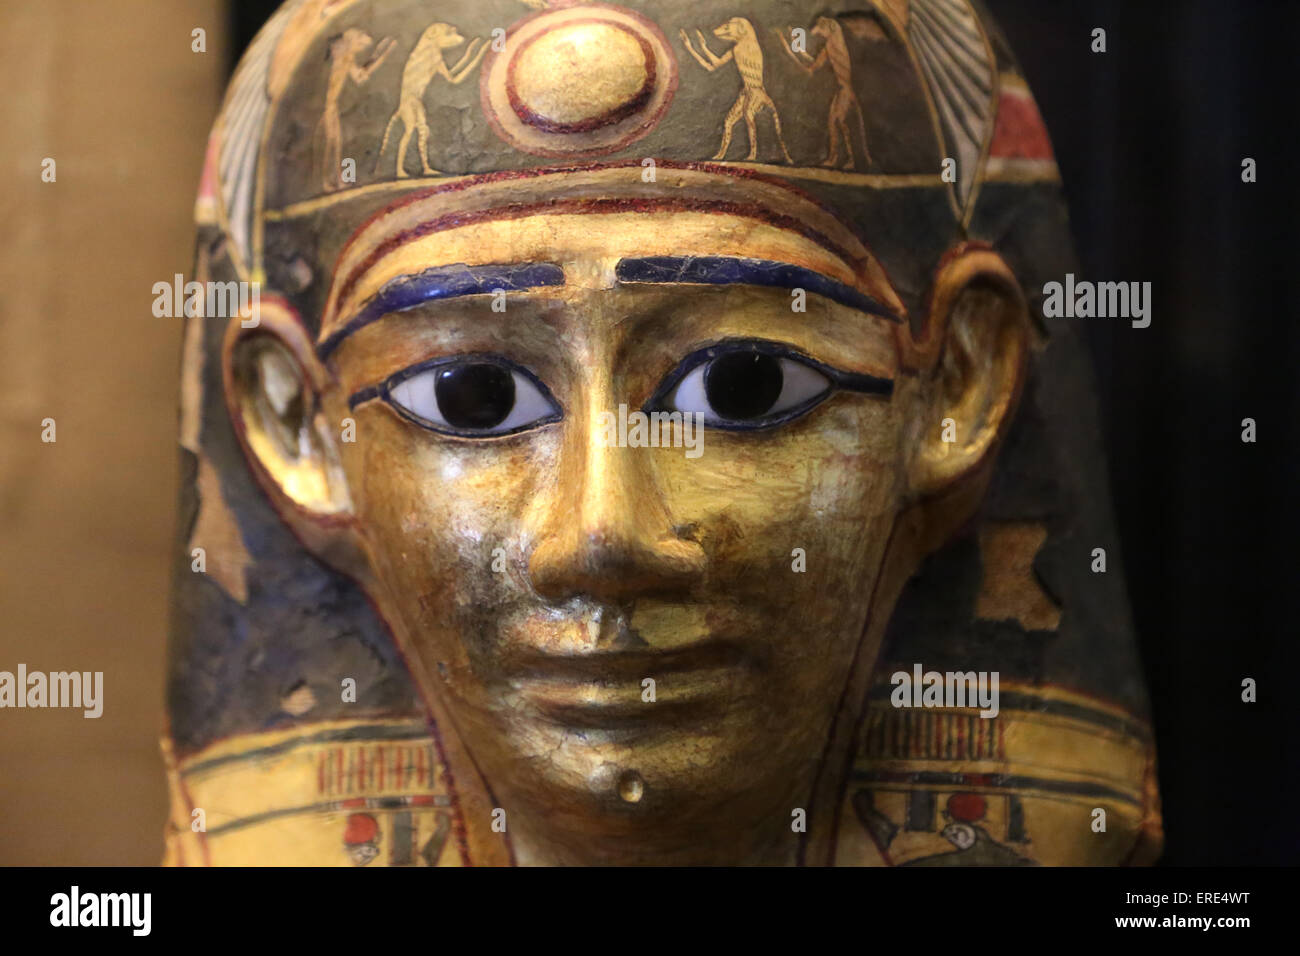 Egyptian art. Funerary mask of Nymaatre. Cartonnage. 2nd C. BC. Vatican Museums. Vatican City State. - Stock Image